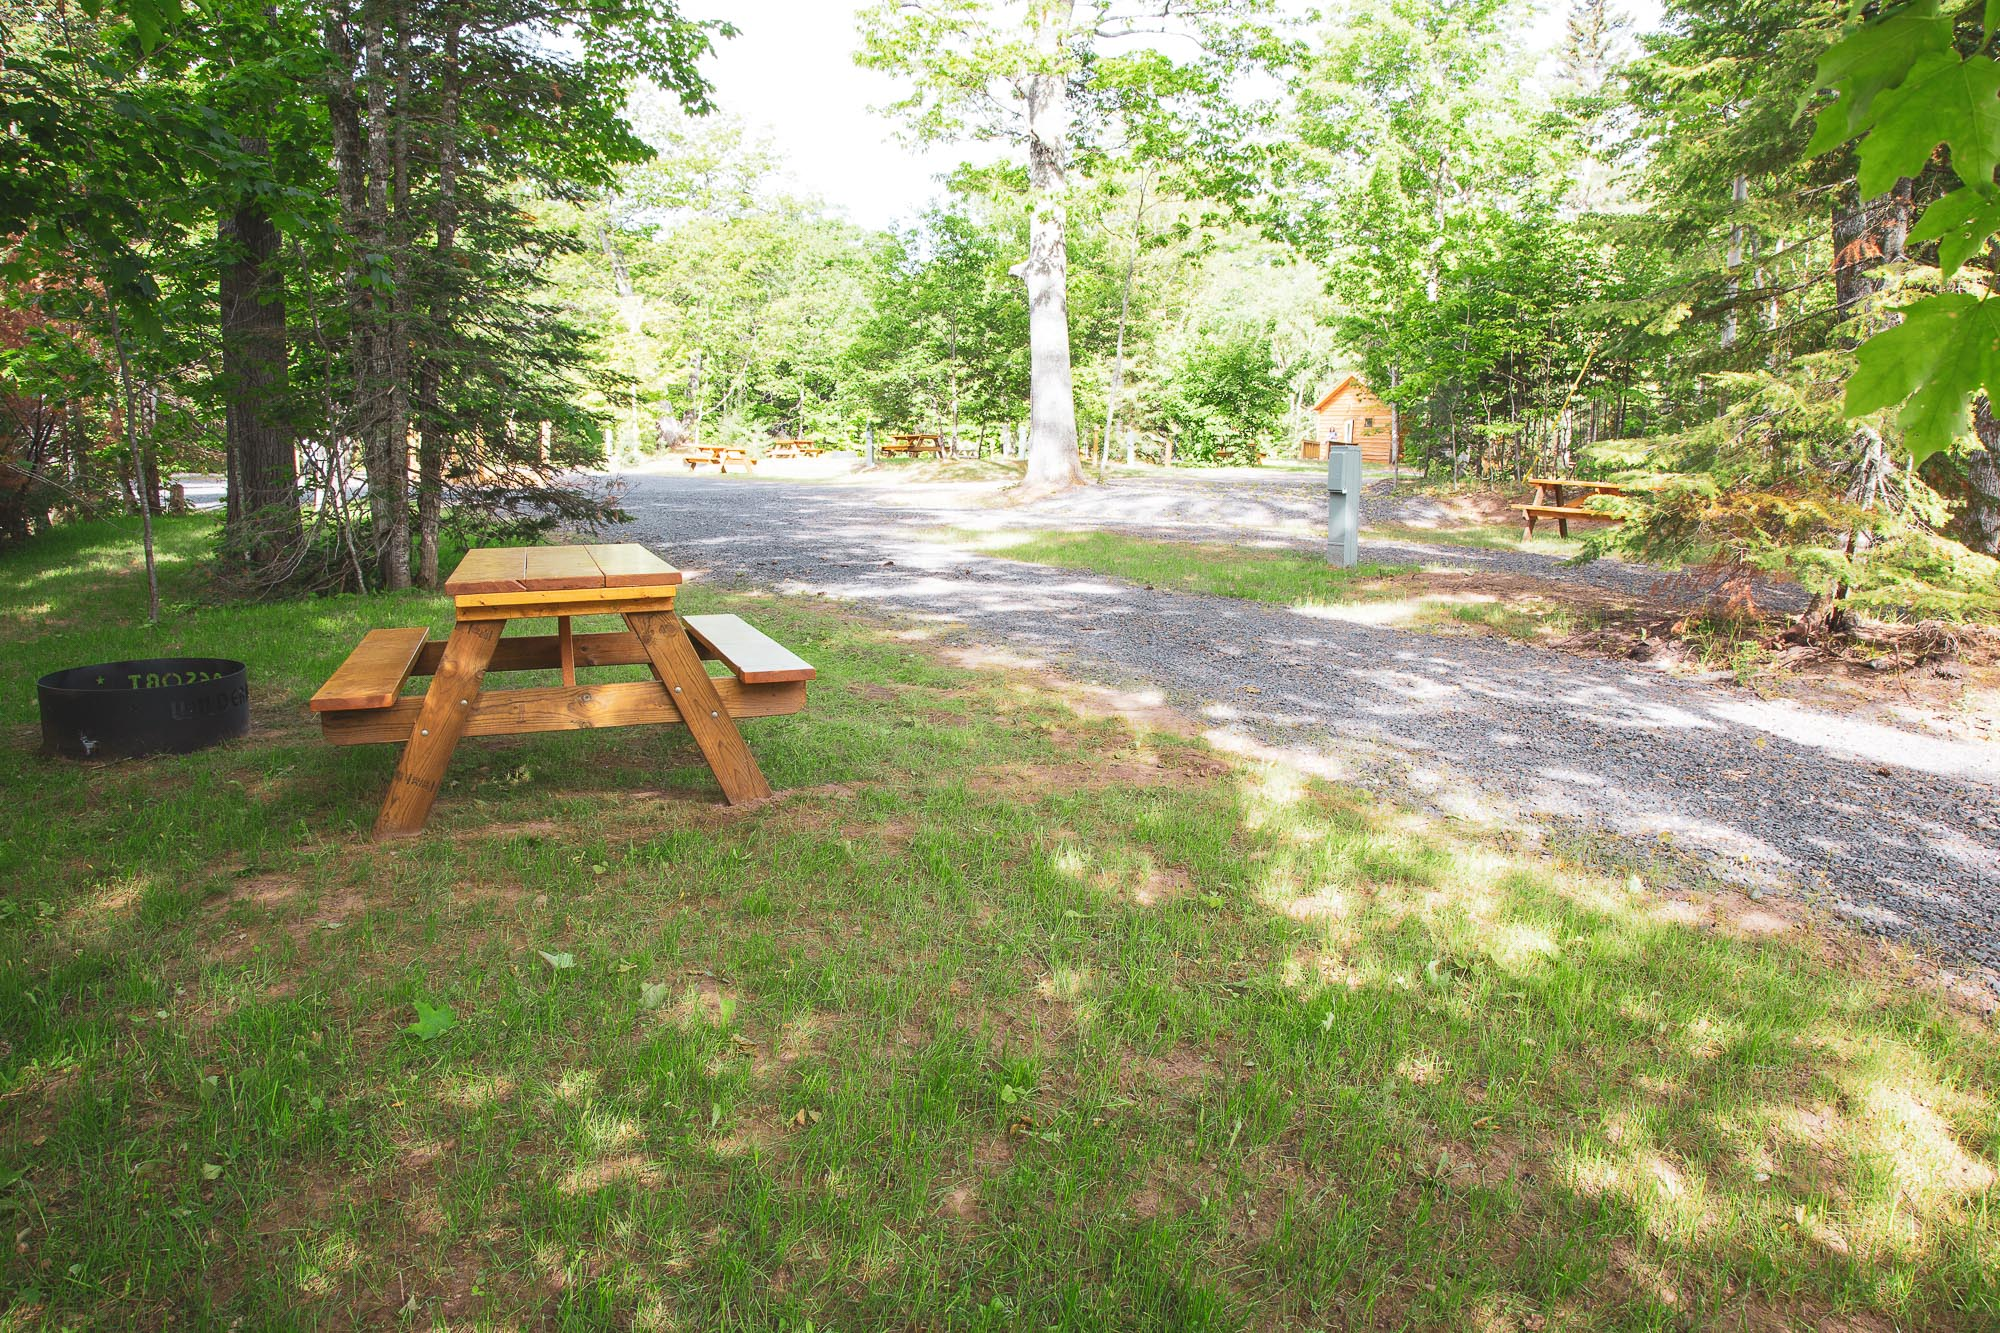 Photo of Campground Site 9 at the Wilderness Resort in Lac La Belle Michigan